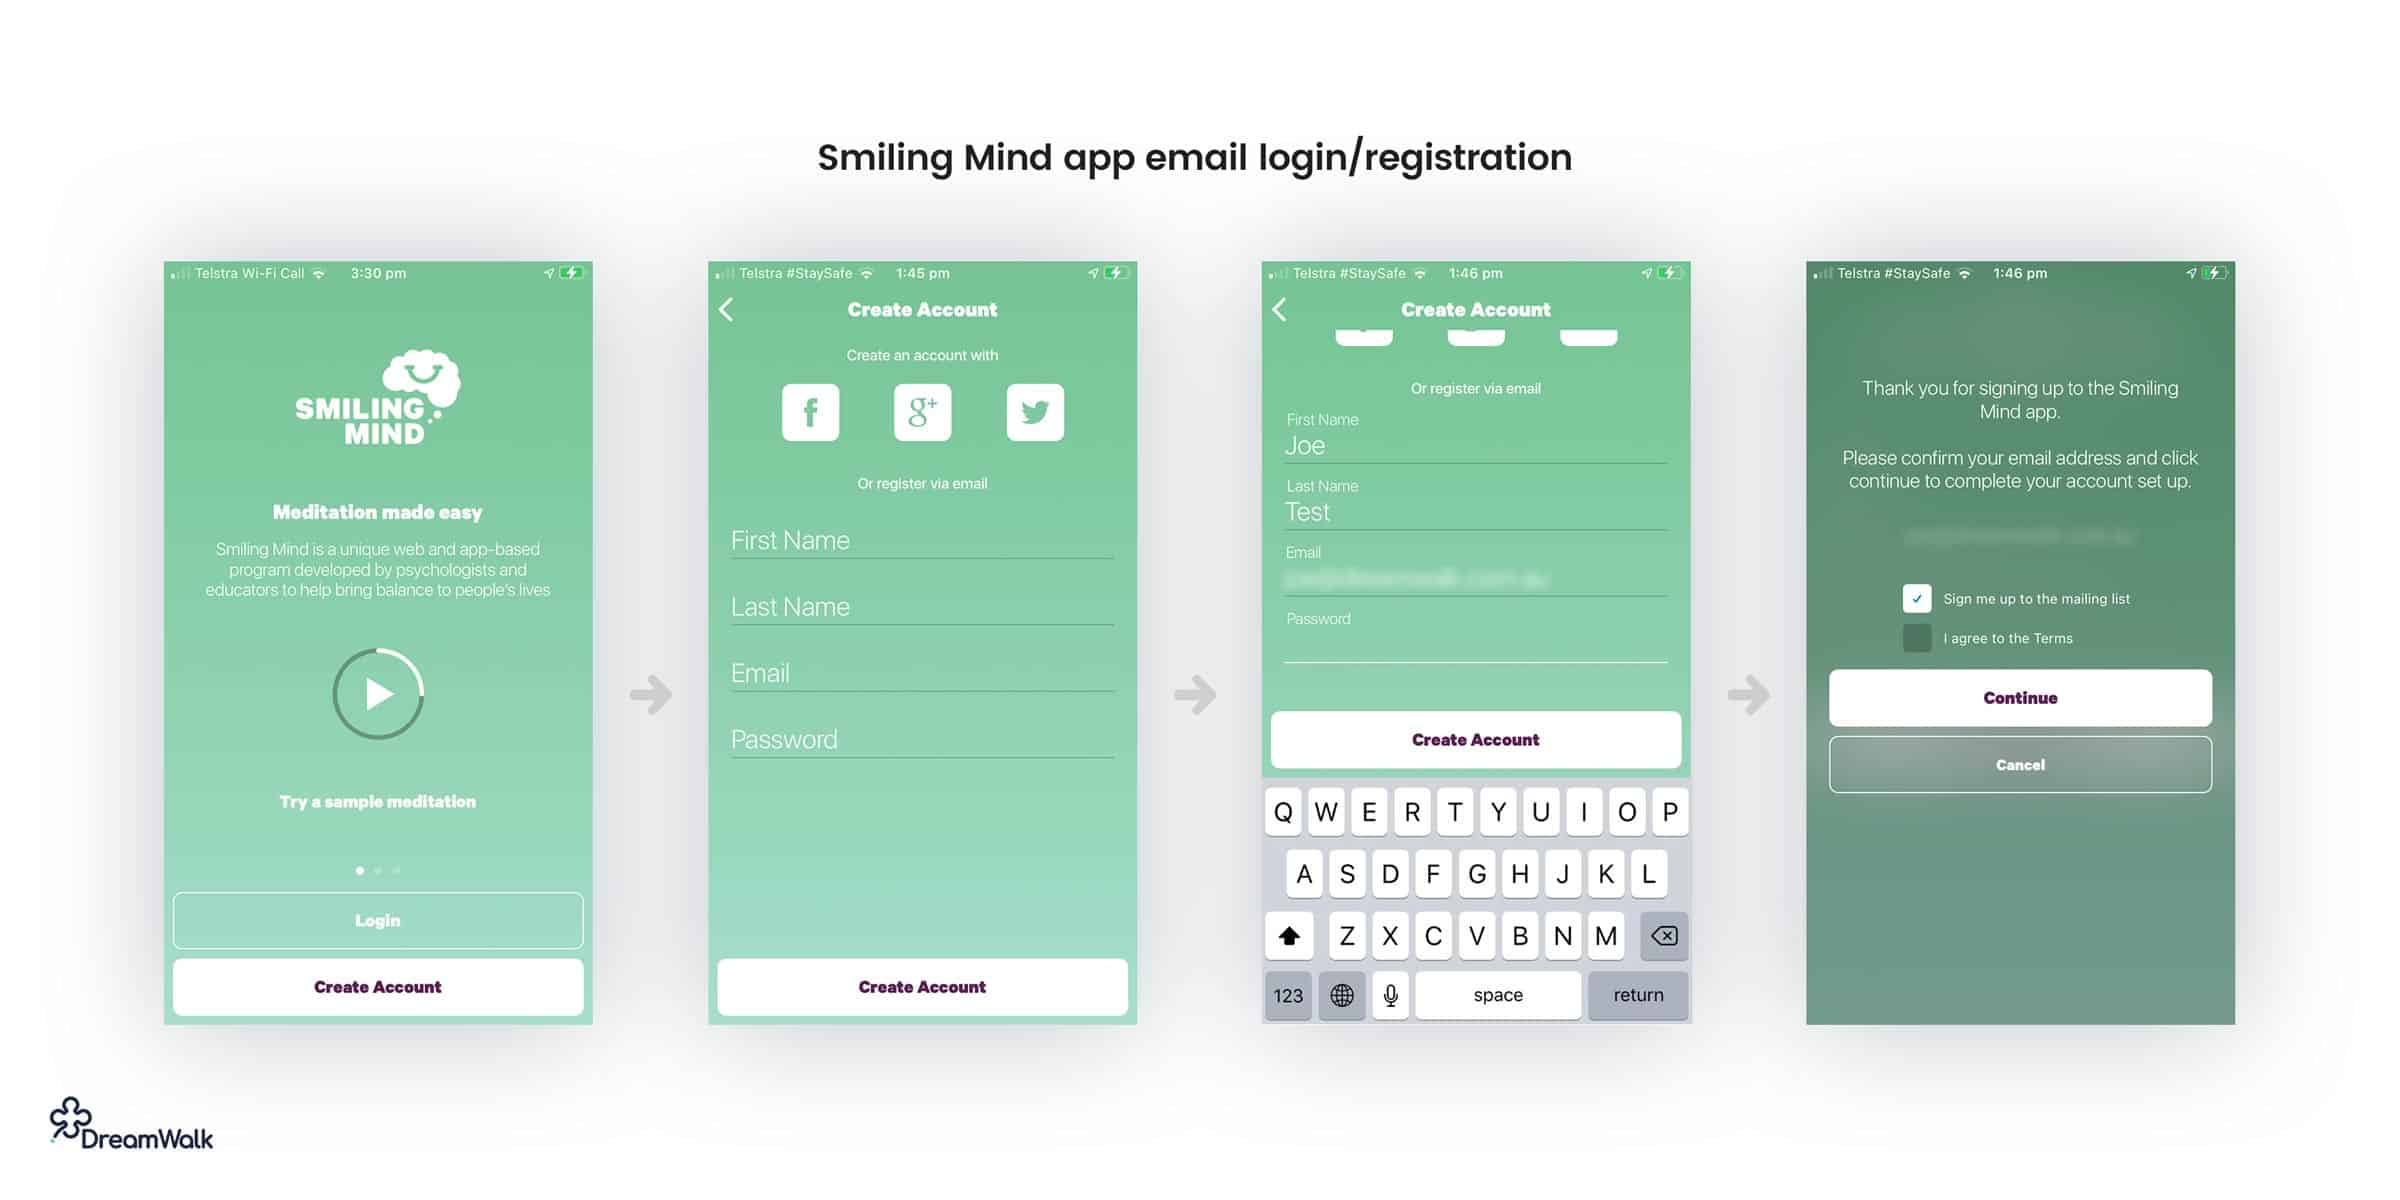 Smiling-Mind-app-email-login-registration-ux-ui-design